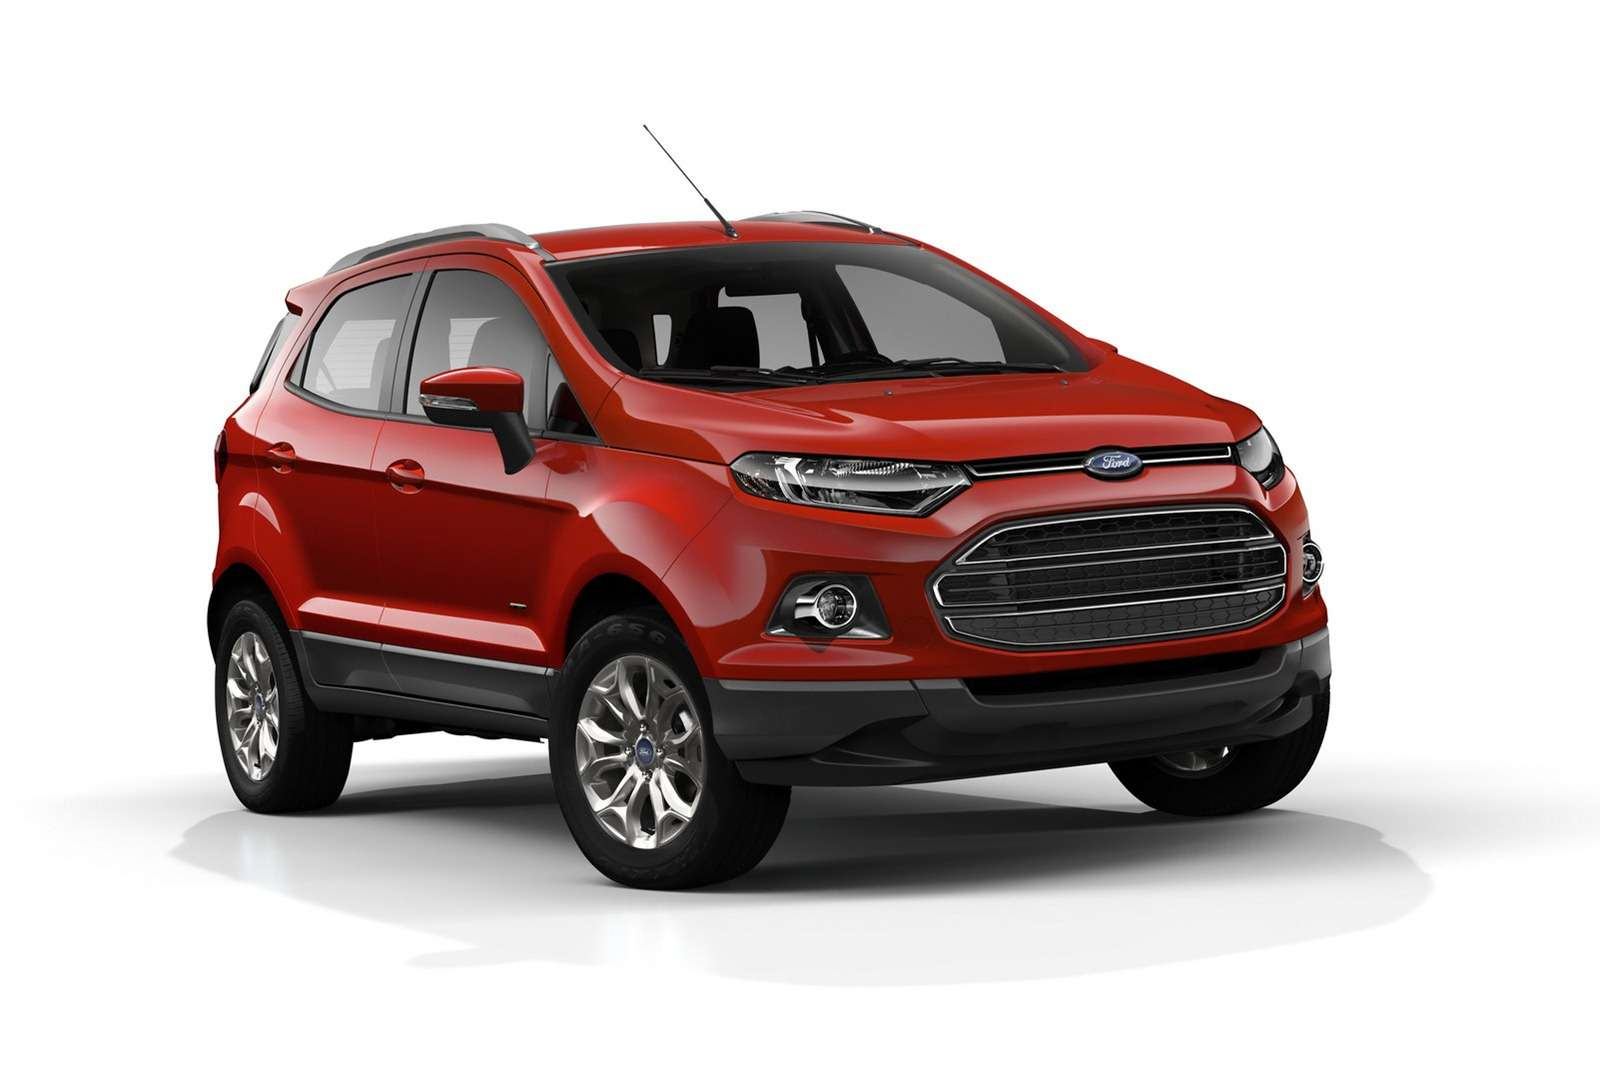 Ford EcoSport Crossover Pic